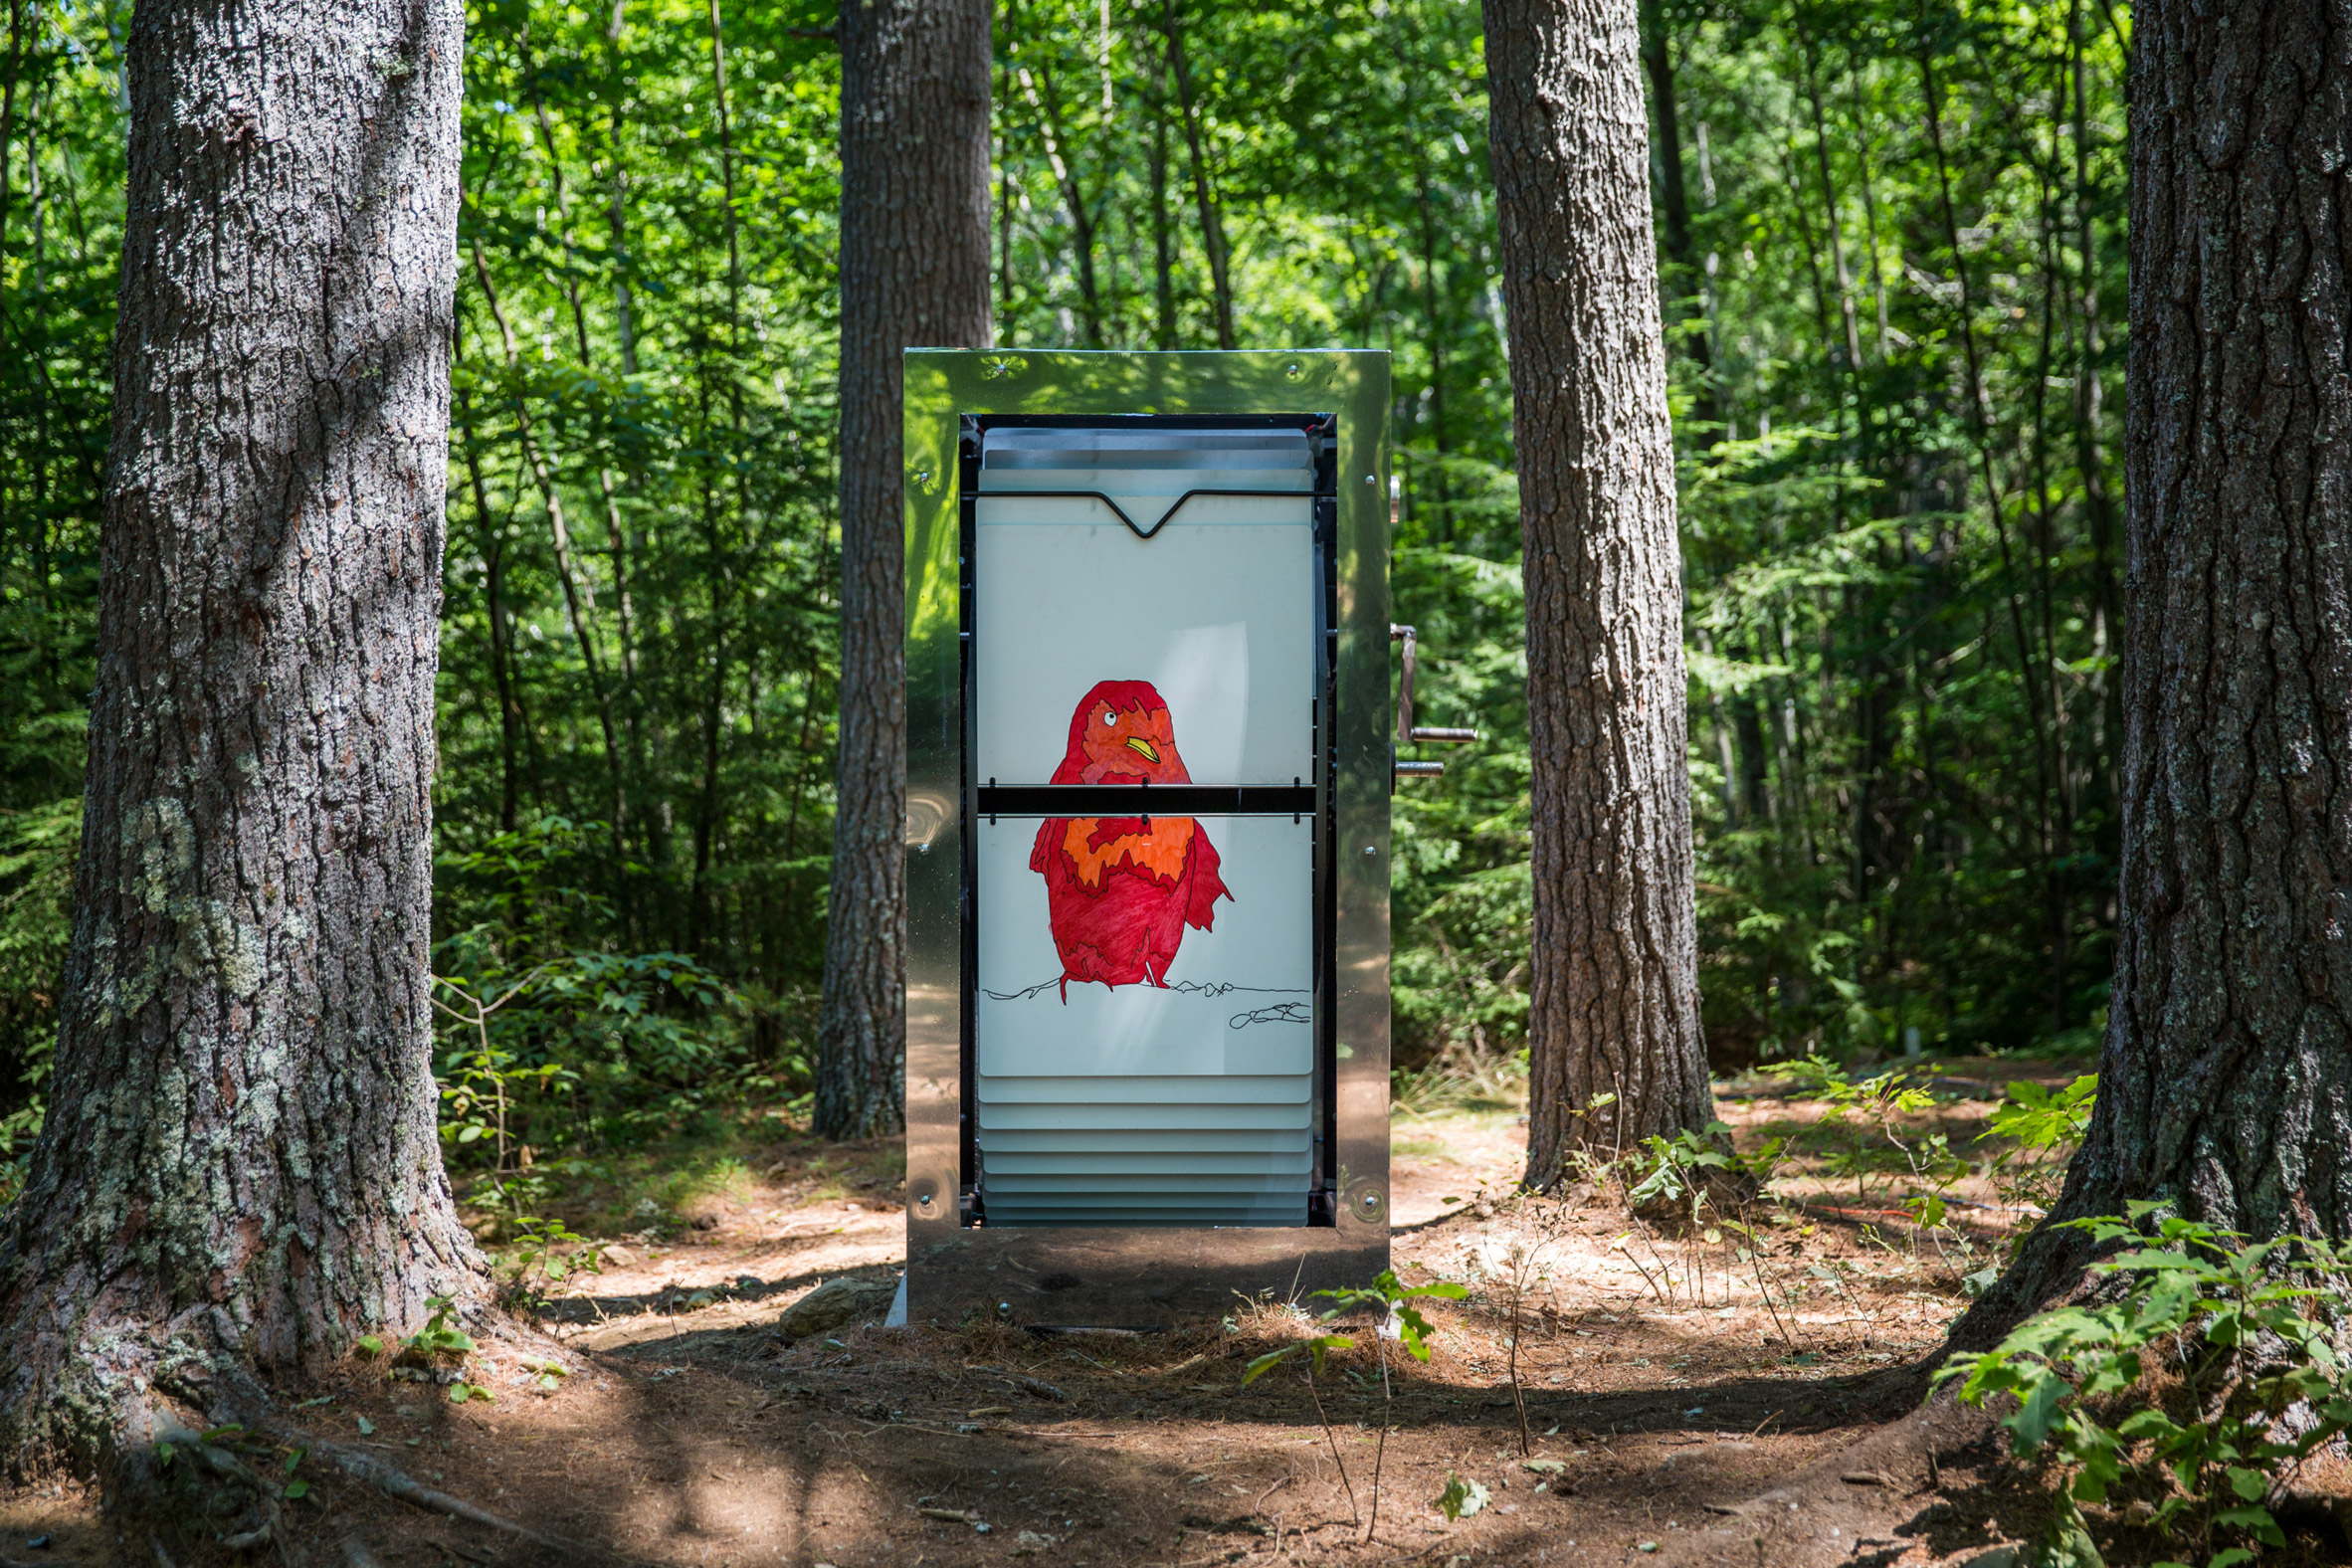 Mobile Studio Architects installs giant flip-books in the forests of New Hampshire